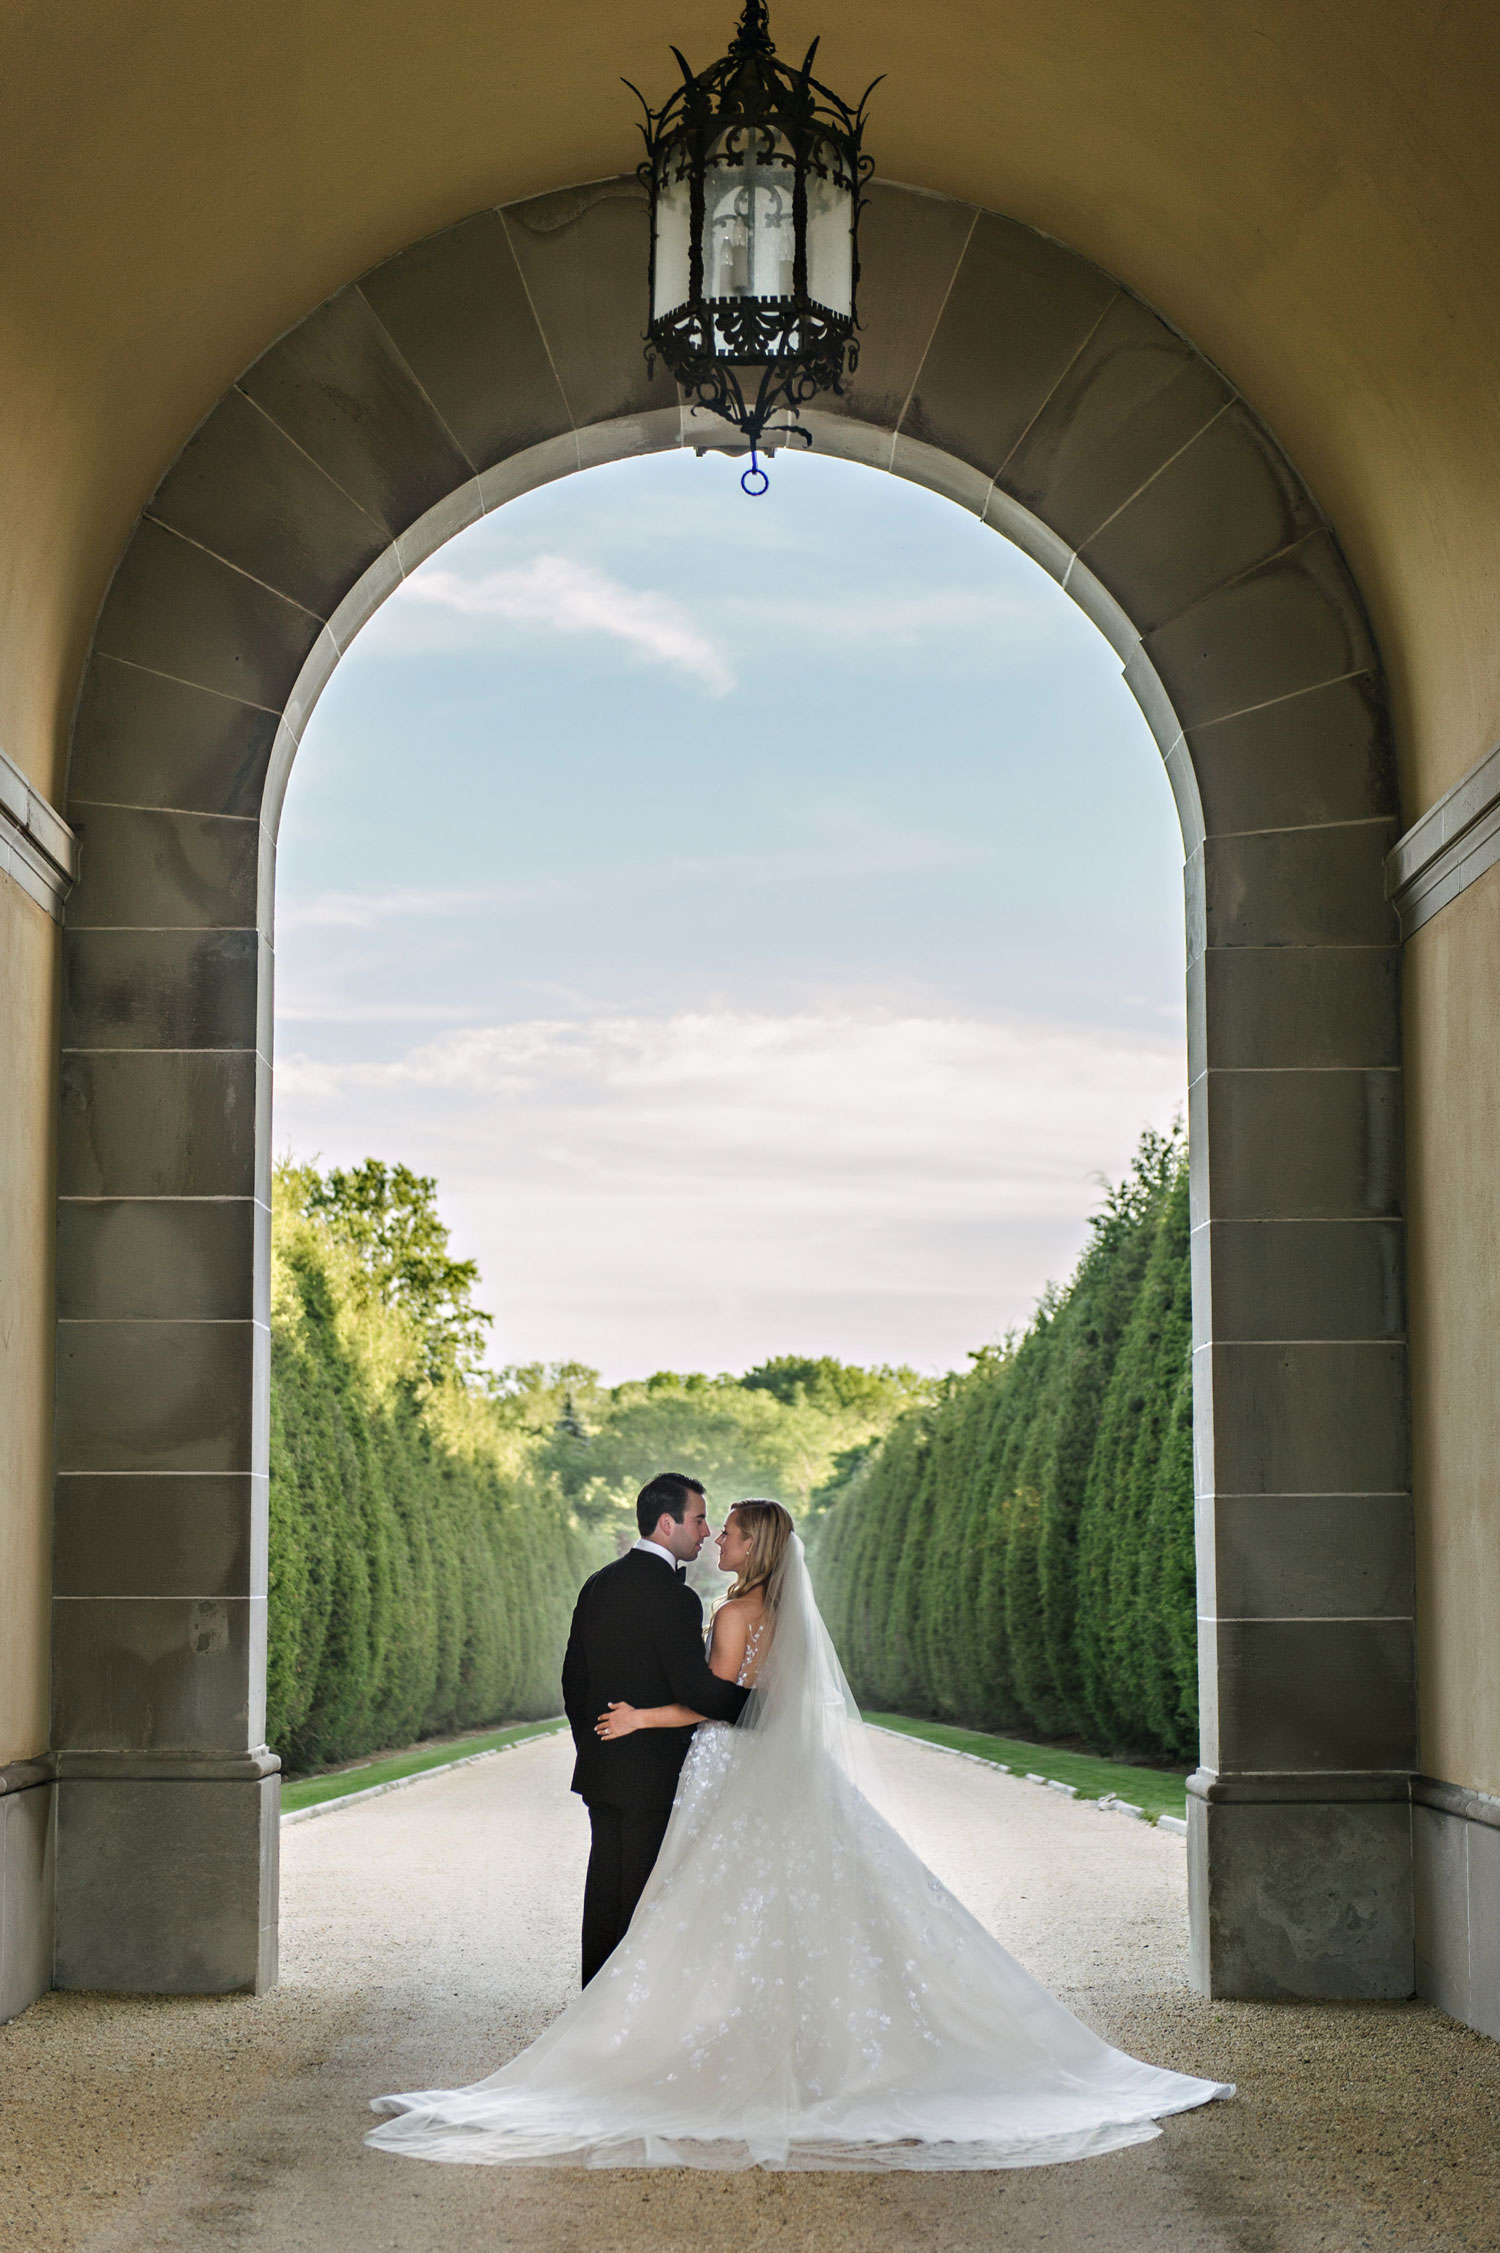 Bride and groom under arch at castle wedding venue oheka castle